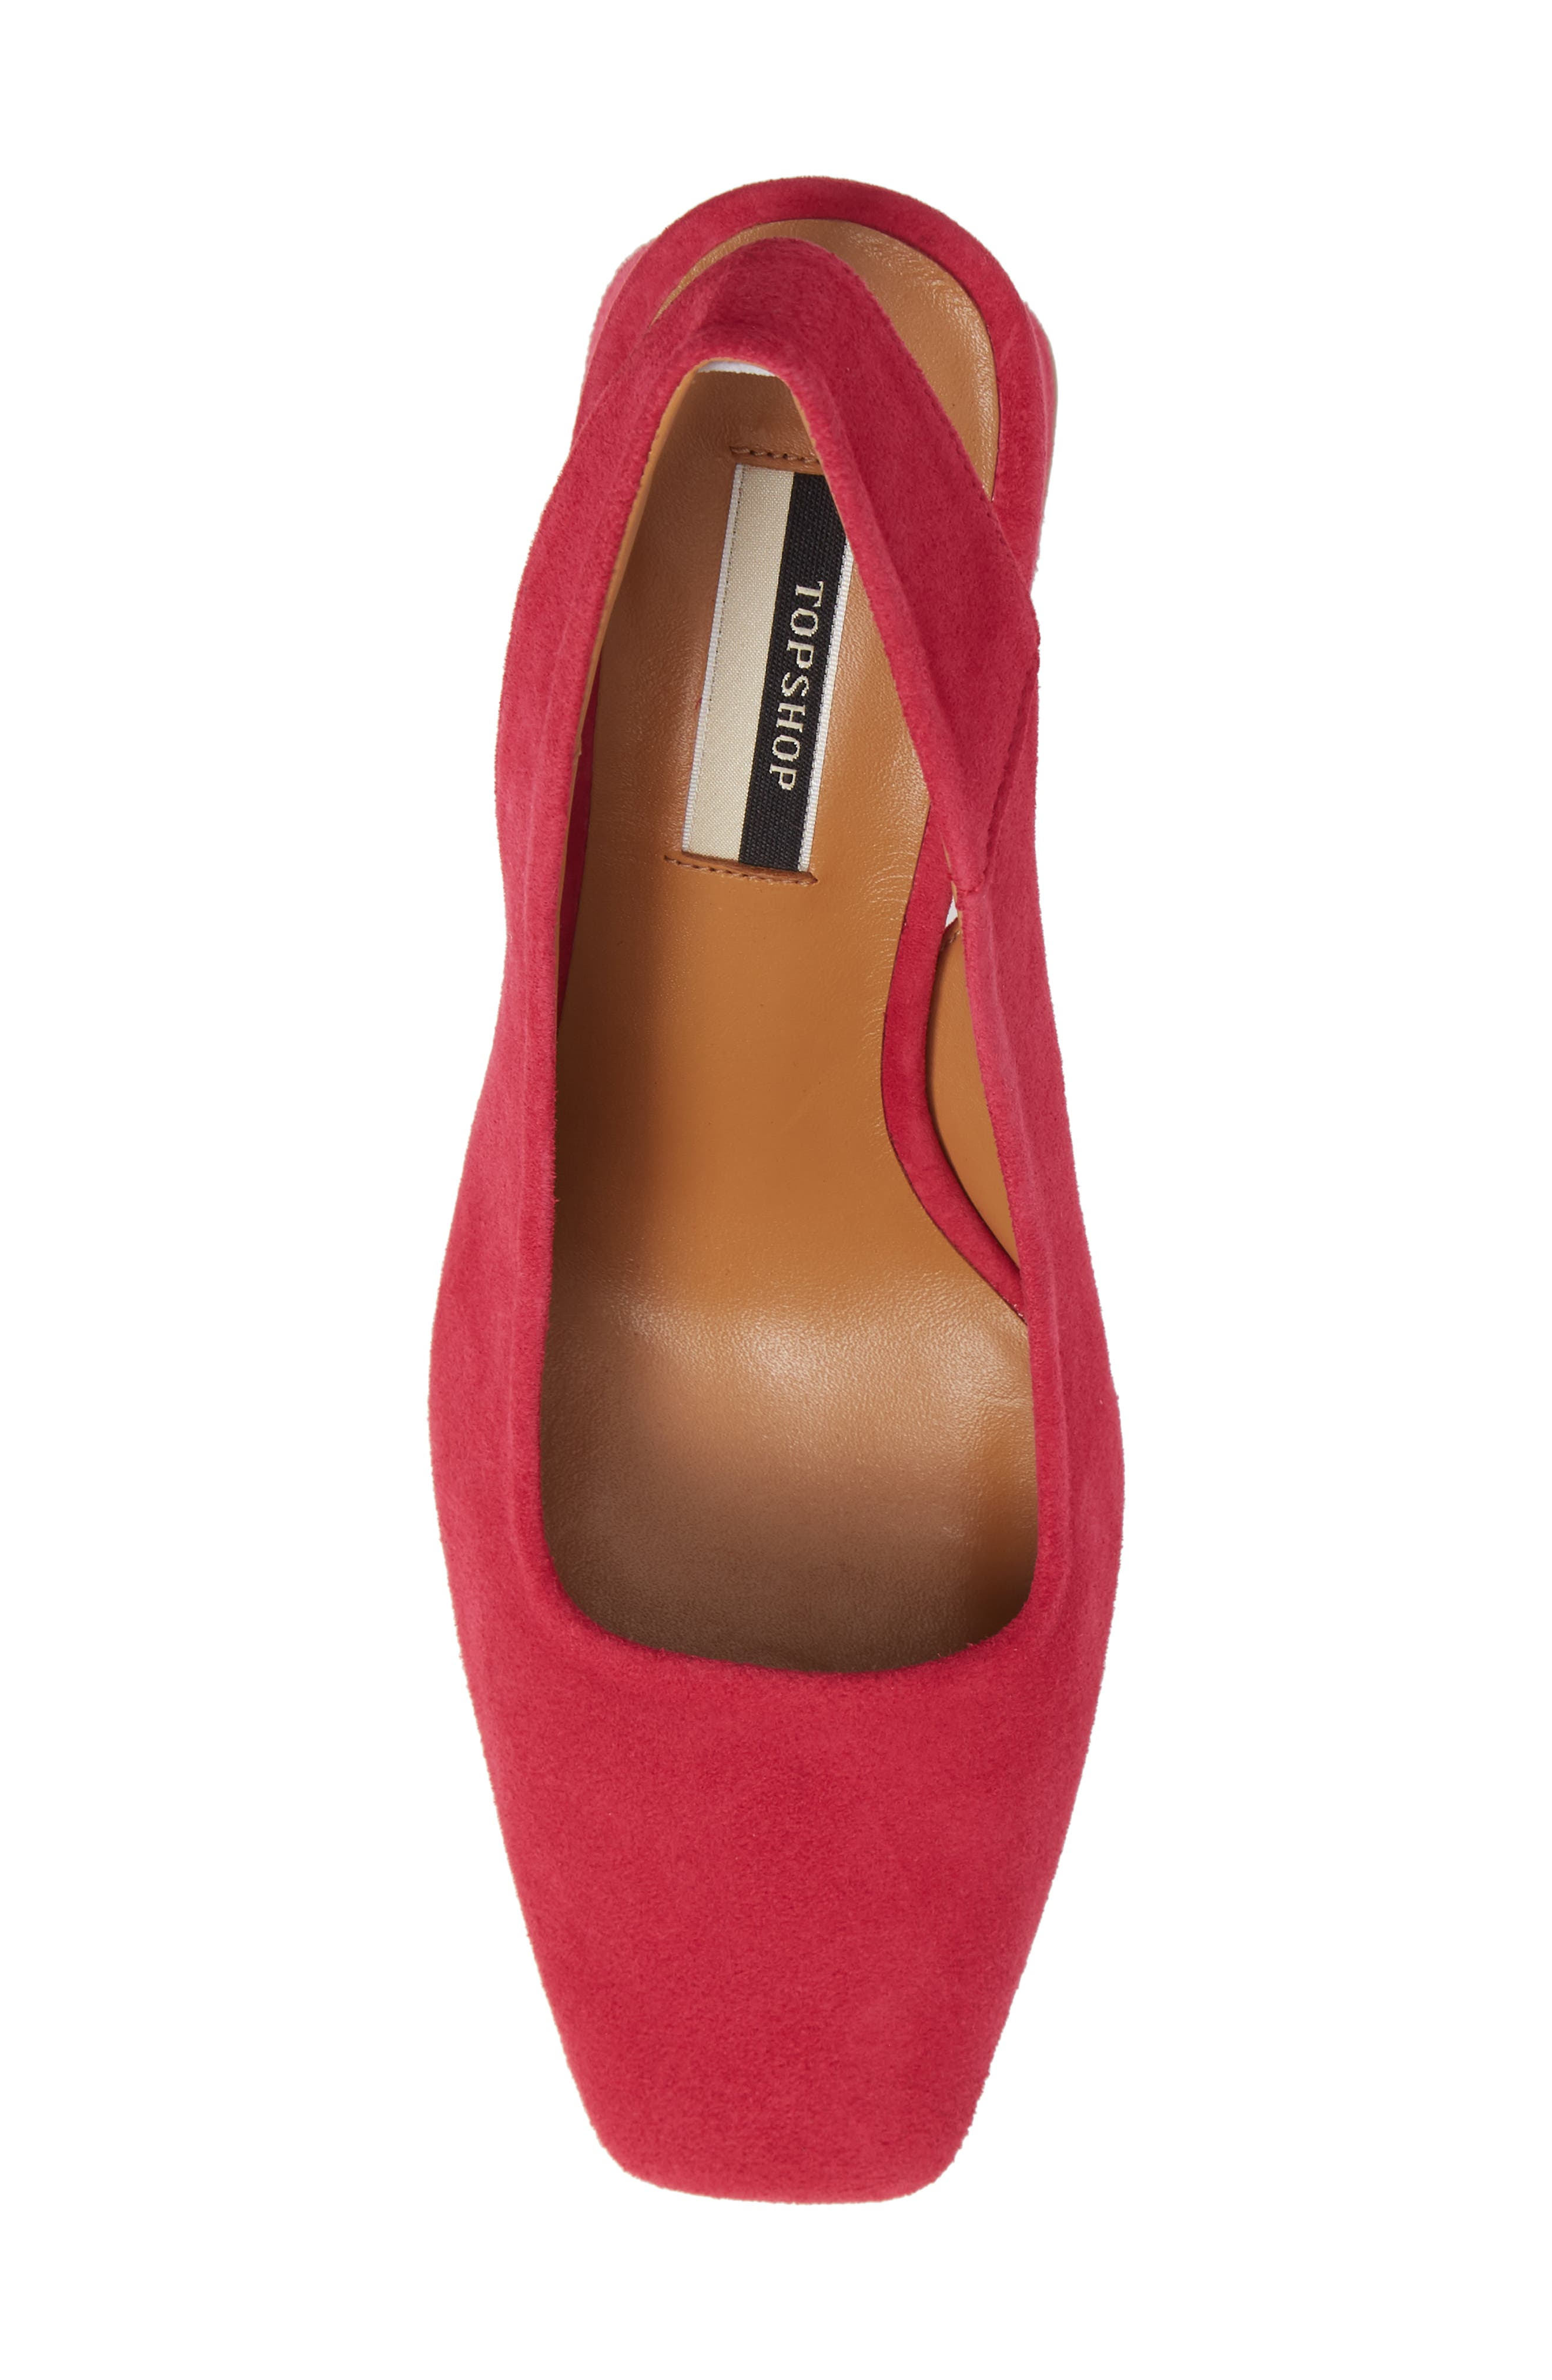 Gainor Block Heel Slingback Pump,                             Alternate thumbnail 5, color,                             PINK